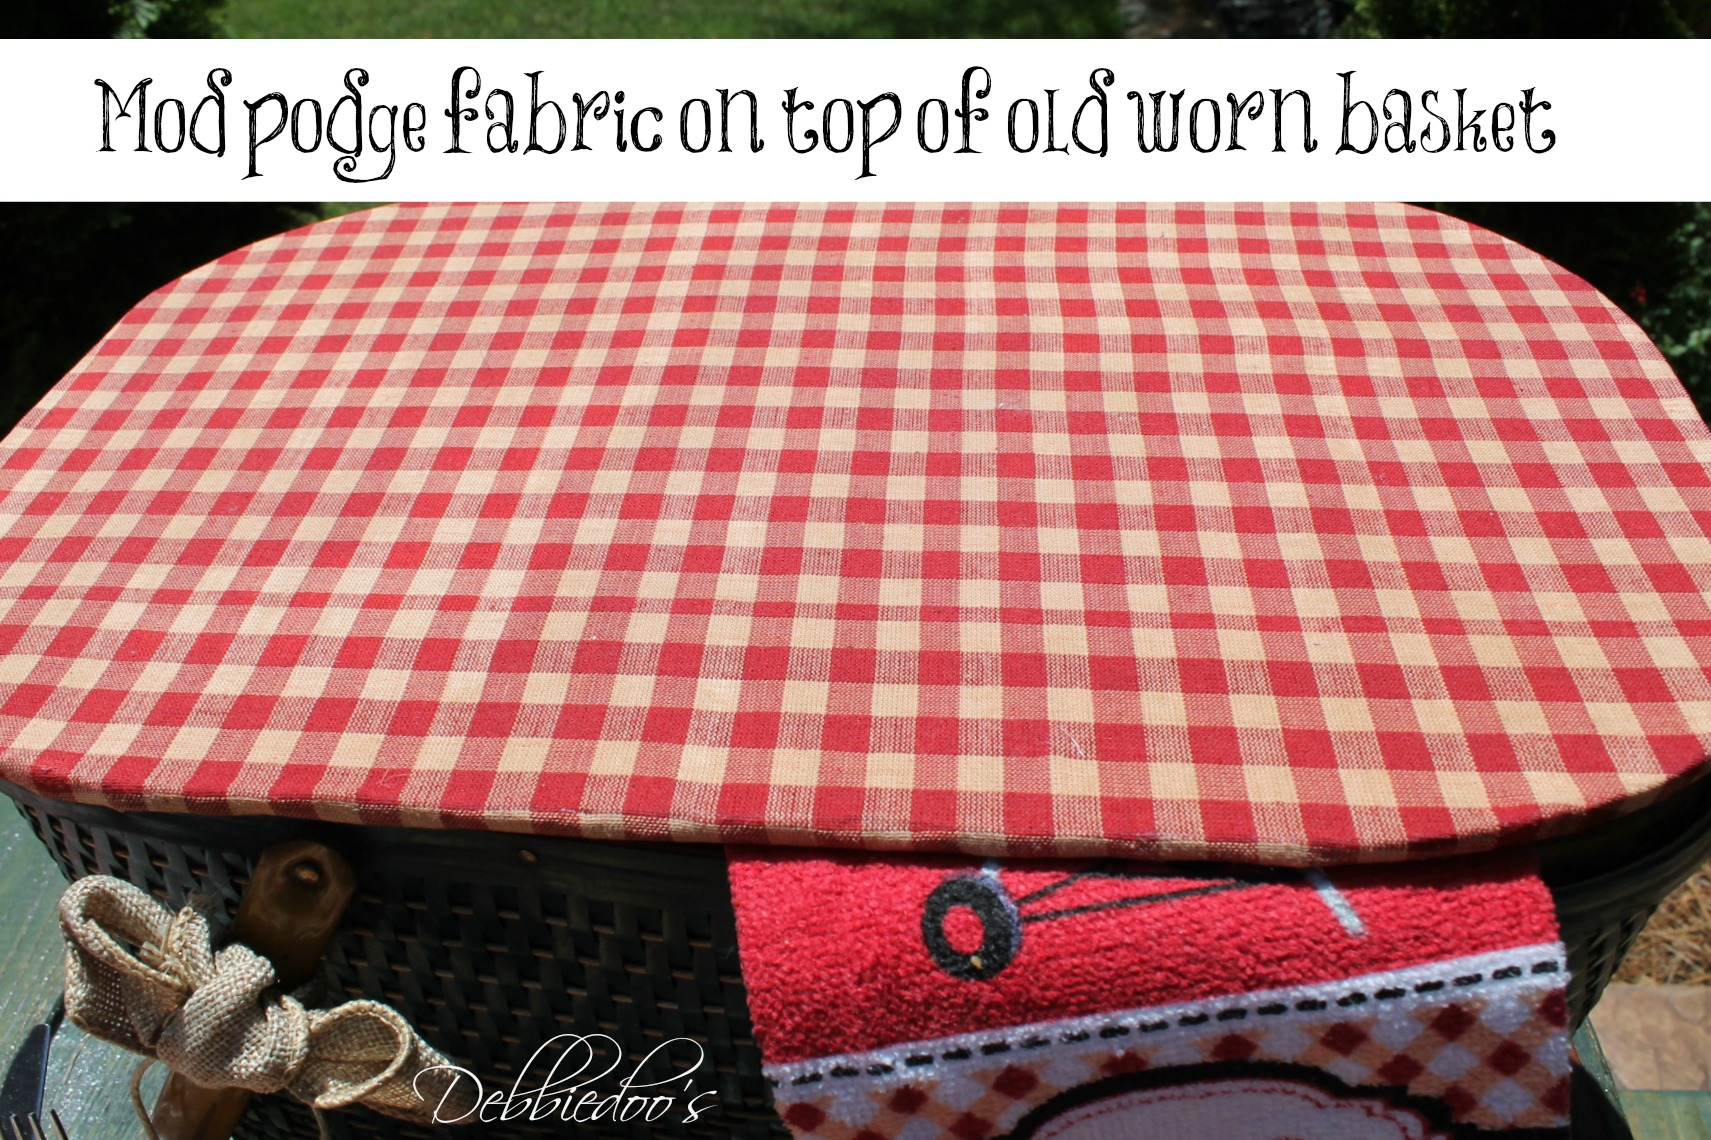 picnic on the patio with a repurposed vintage picnic basket mod podge on top of old worn picnic basket with fabric